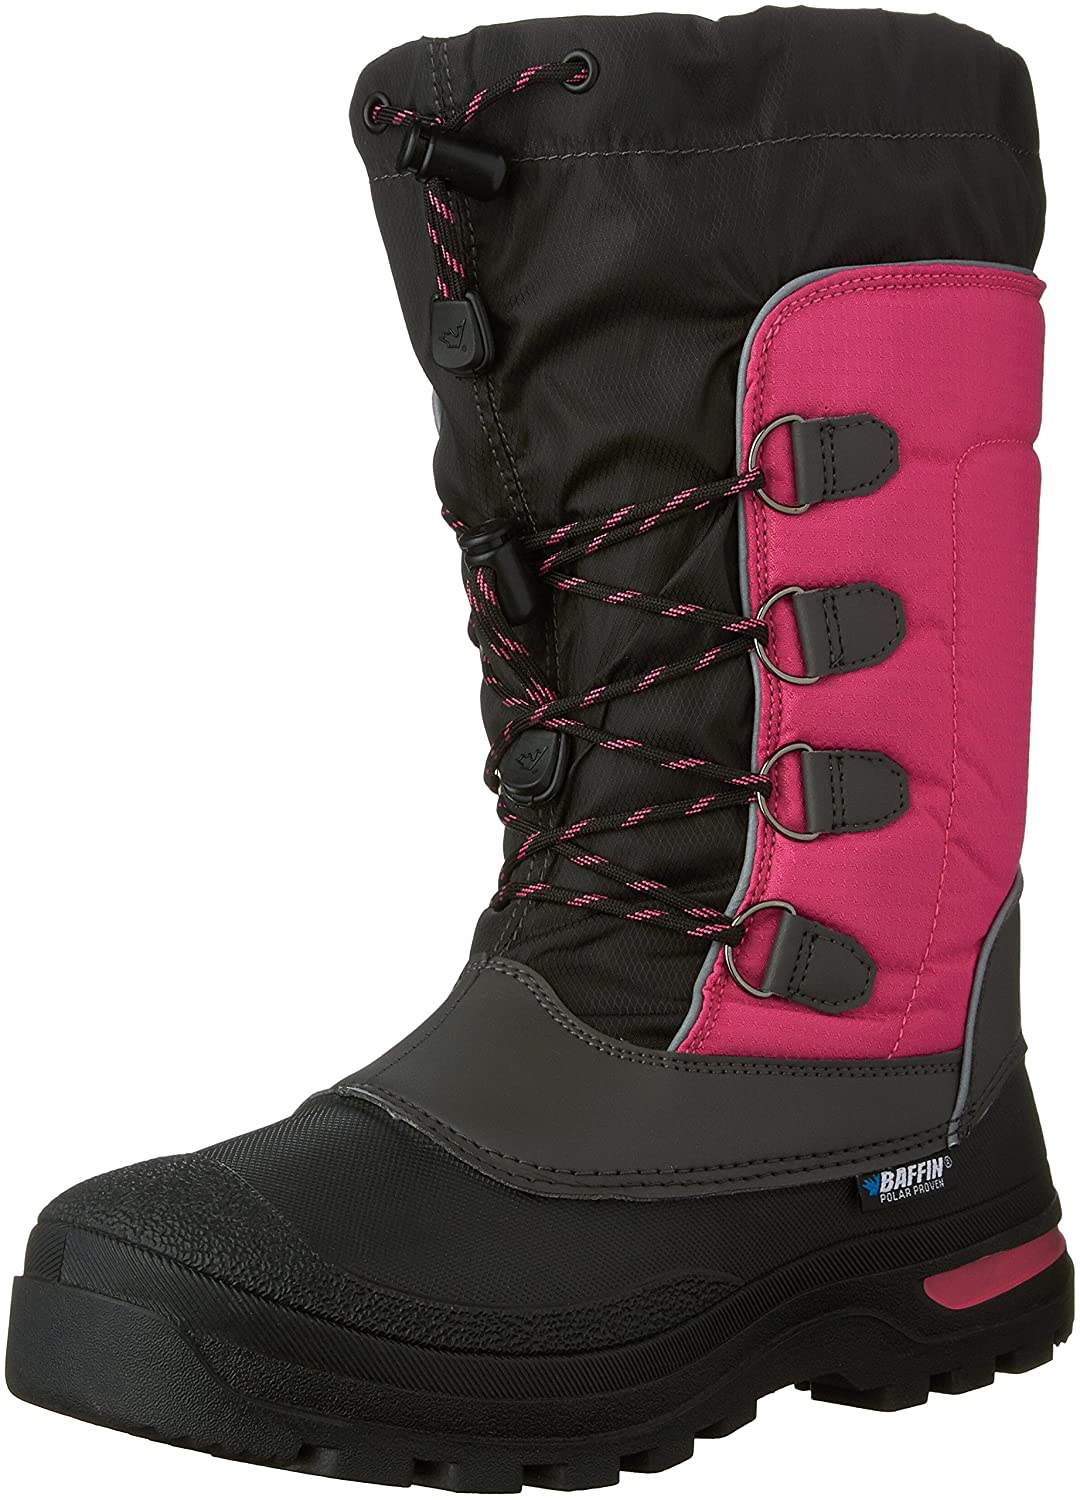 Baffin Kids' PINETREE Snow Boot PINETREE - K